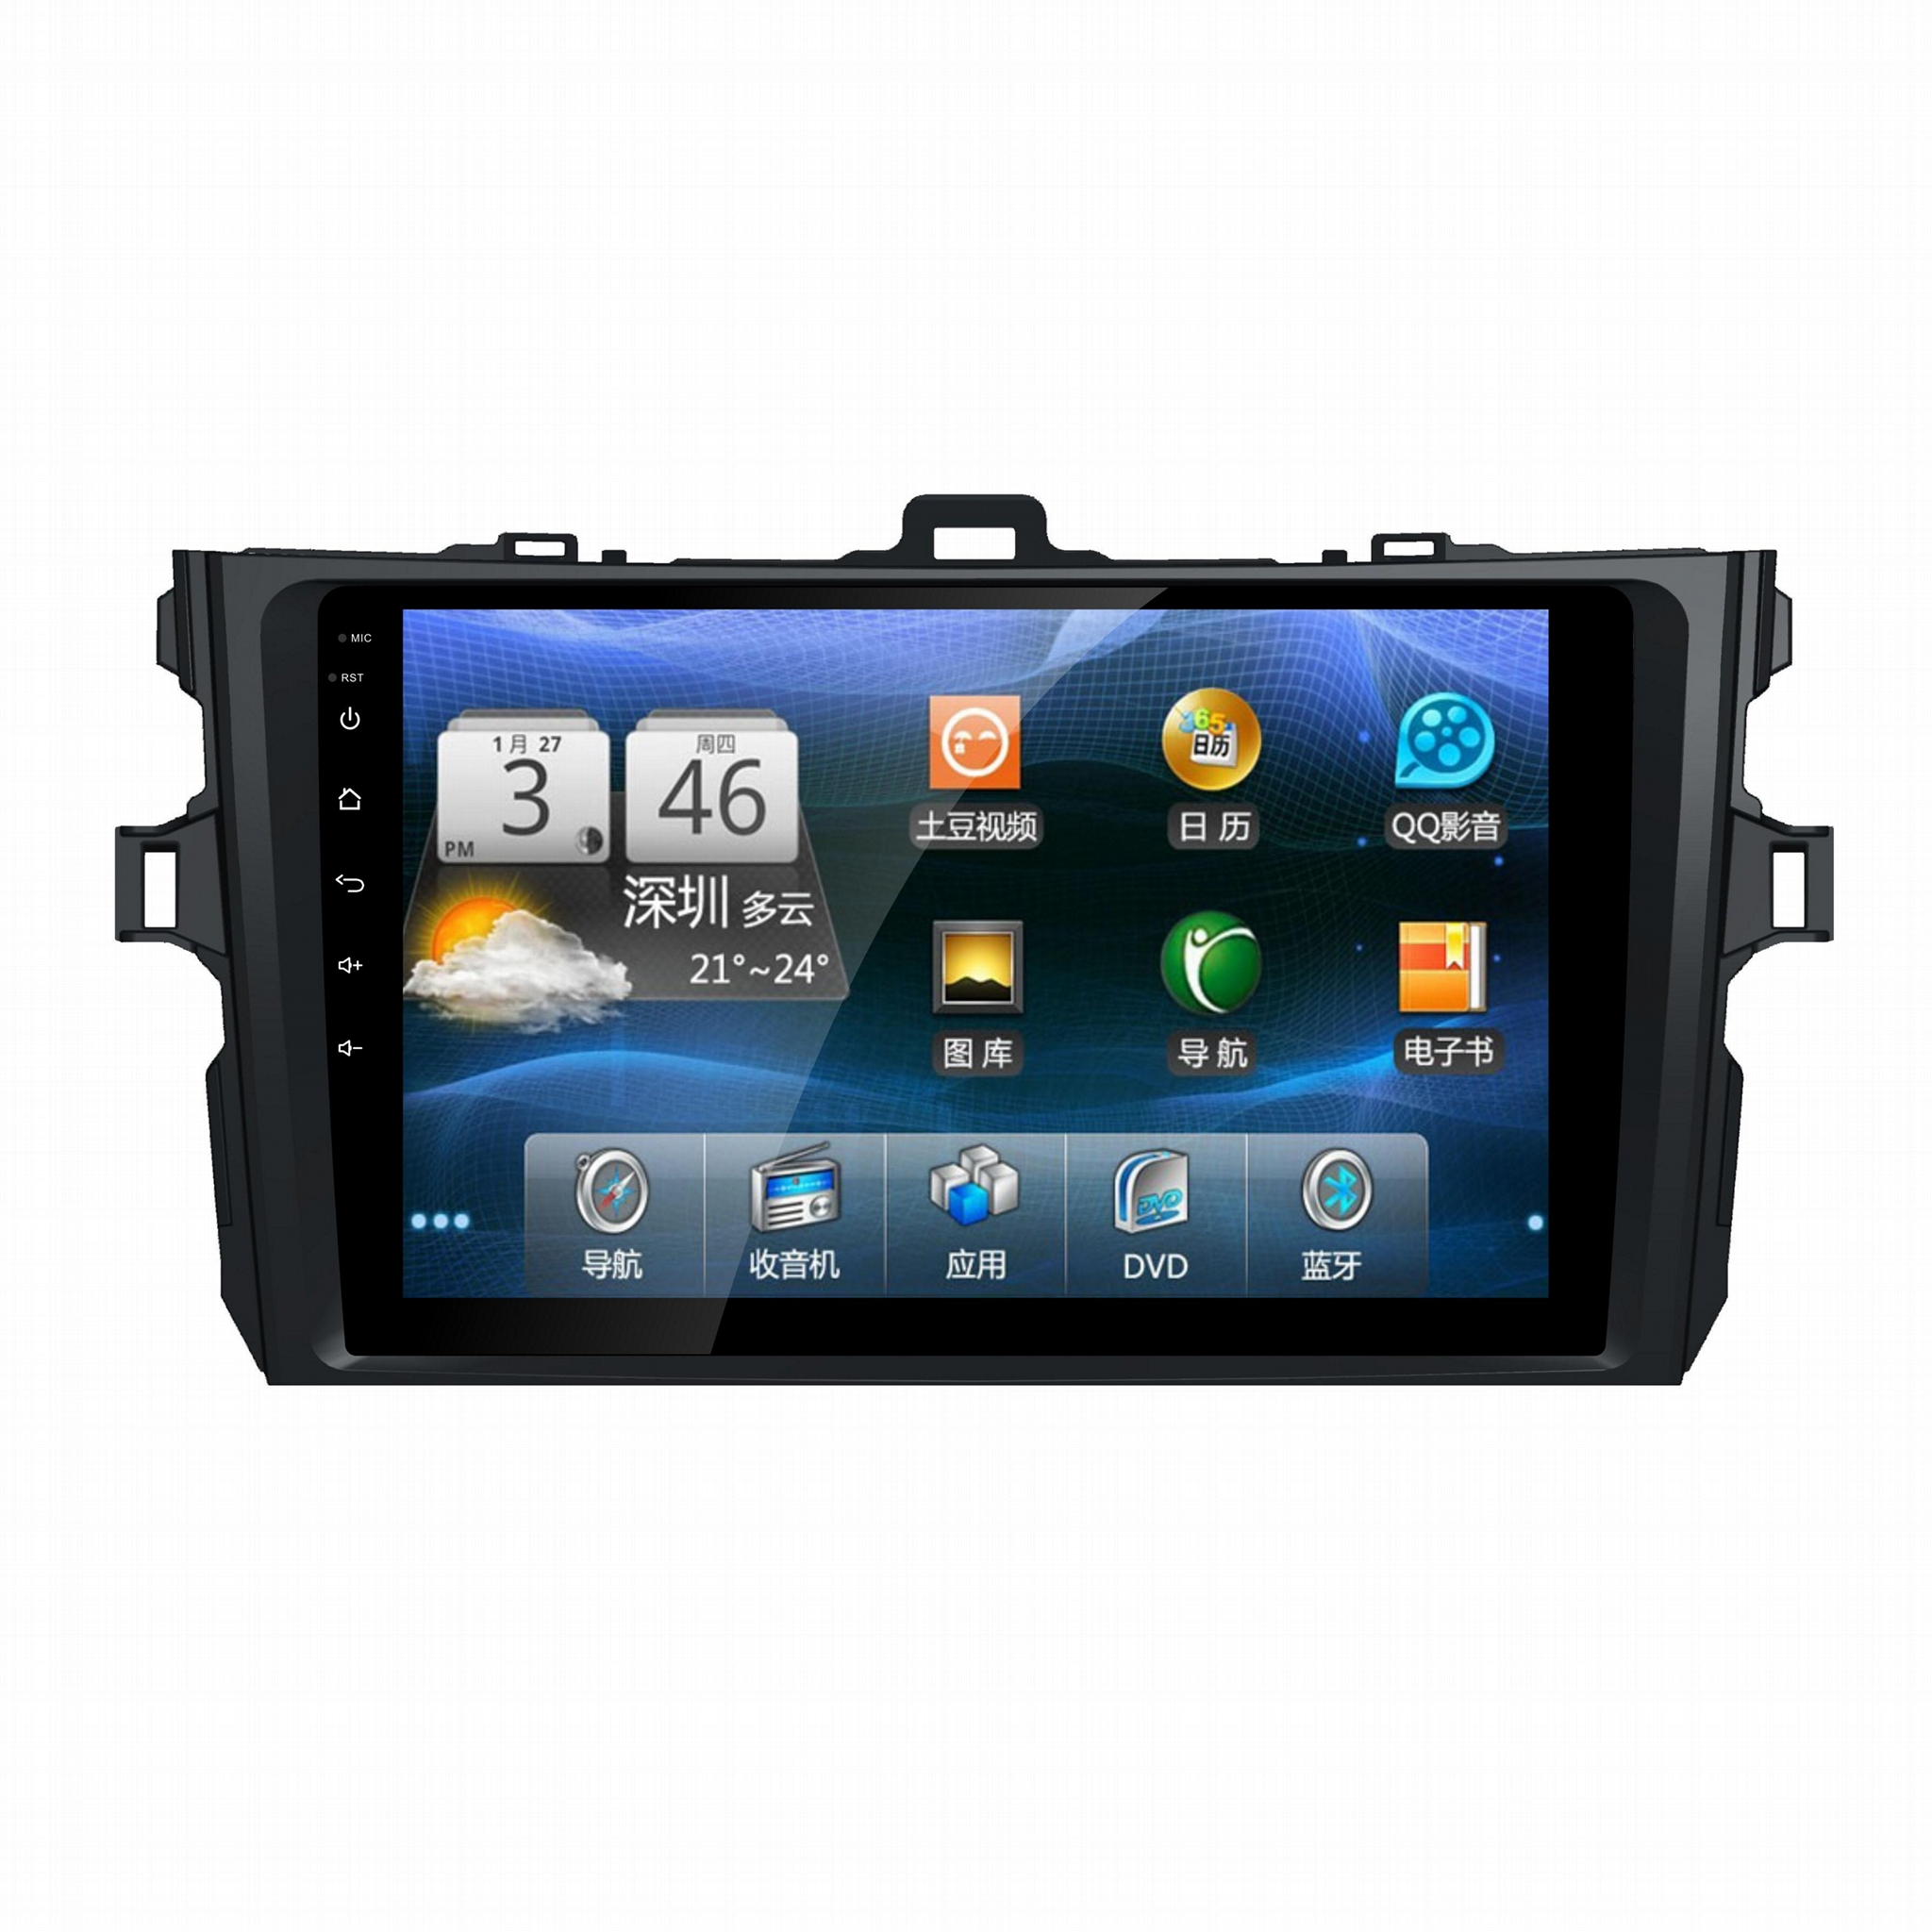 Android 6.0 car dvd radio player stereo gps for Toyota Corolla  2008 2009 2013 1